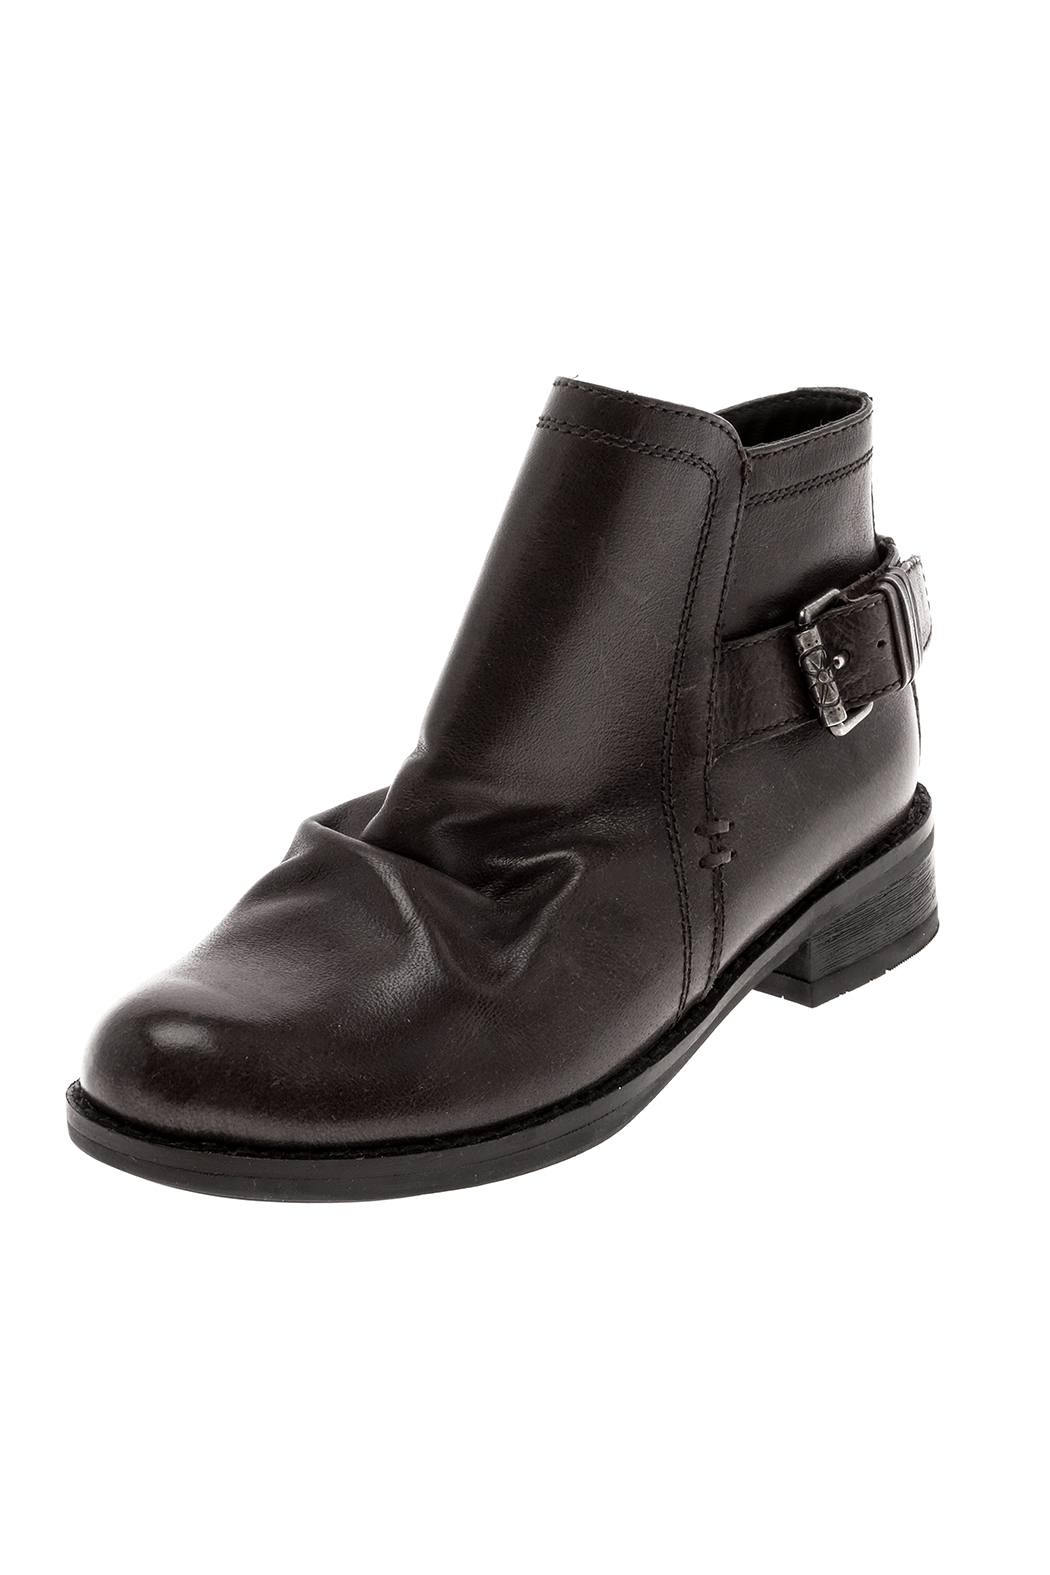 Black Mid Calf Boot